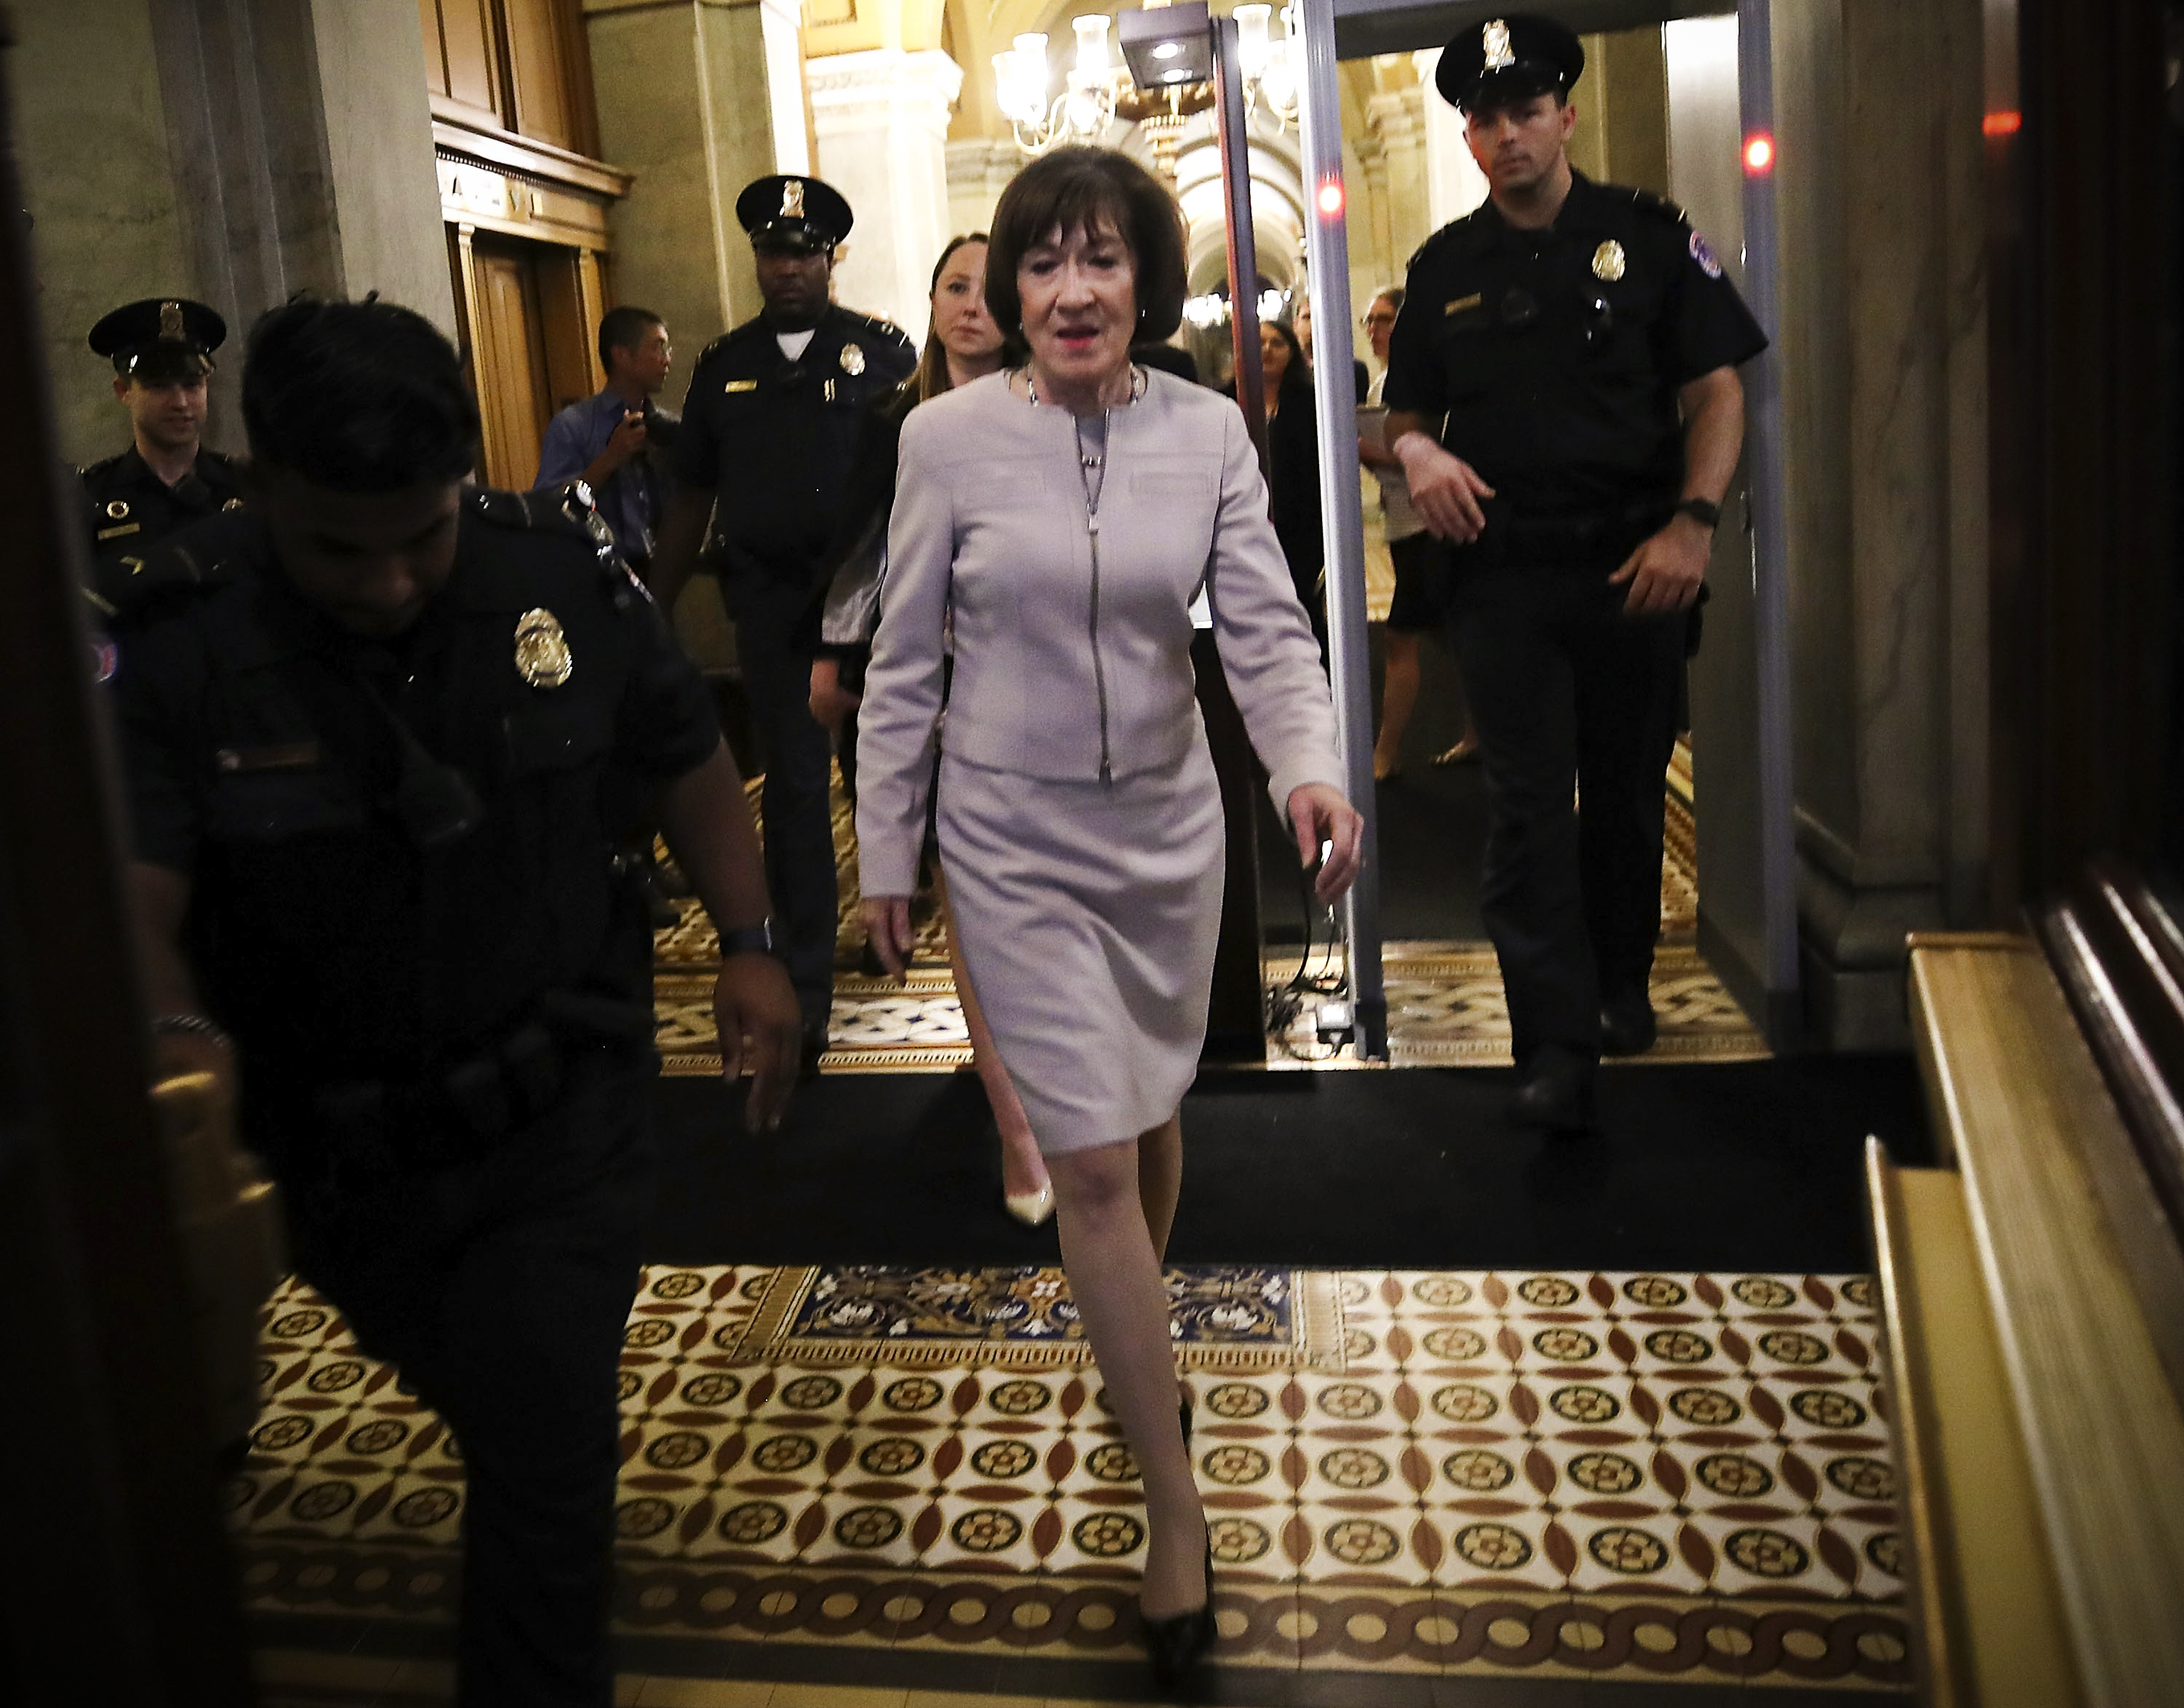 Susan Collins is in the political fight of her life, and Brett Kavanaugh is a huge factor